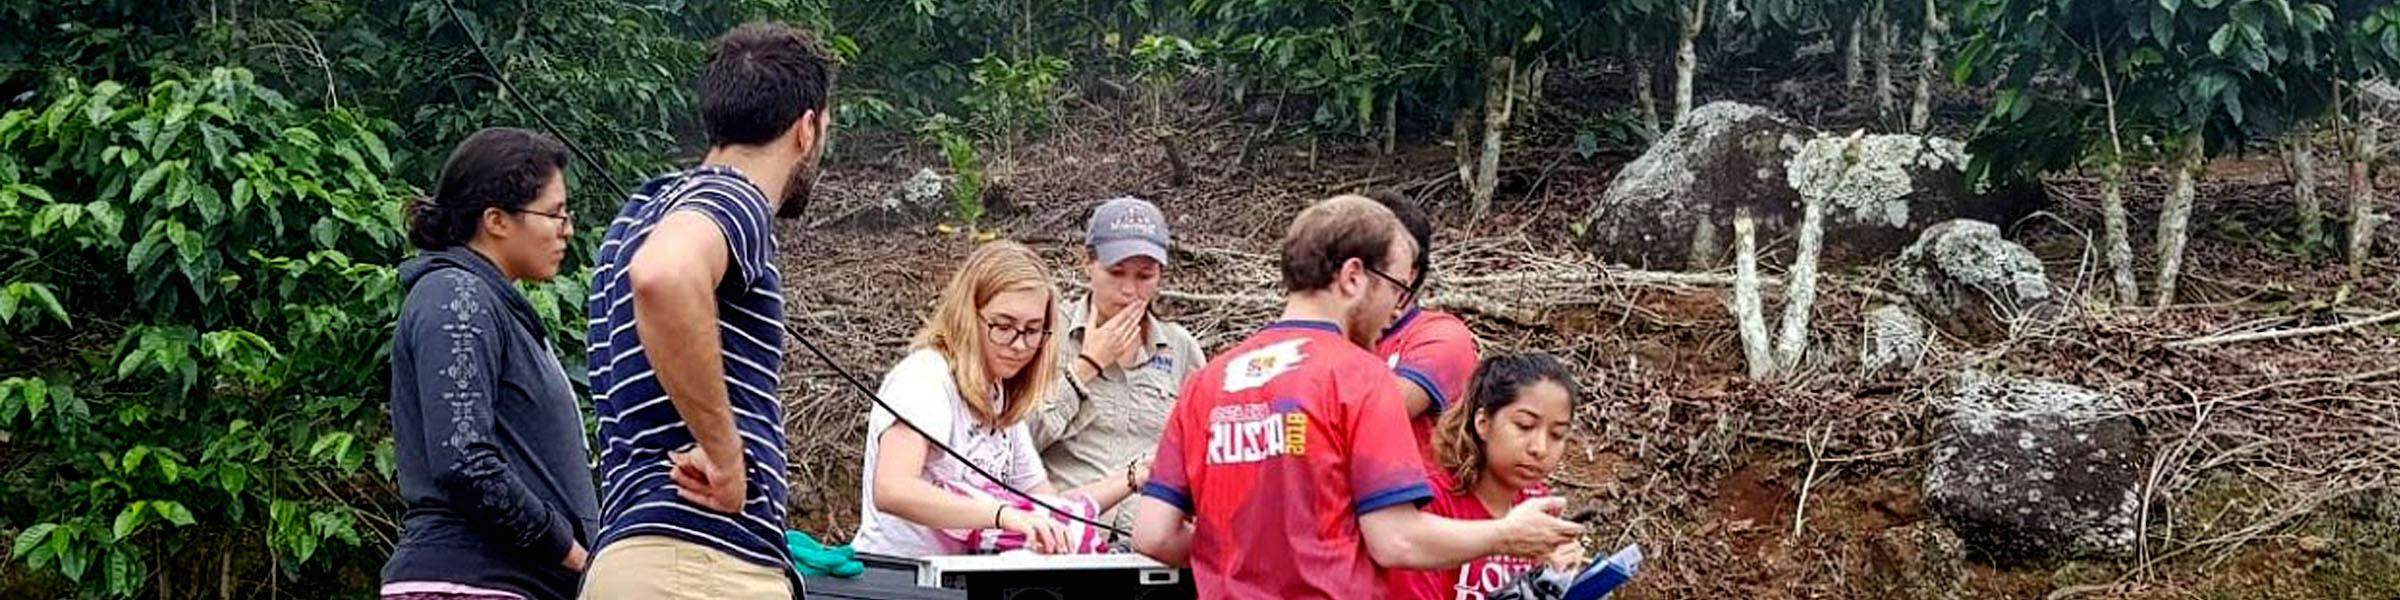 Students from the GREAT project conducting research in Costa Rica.